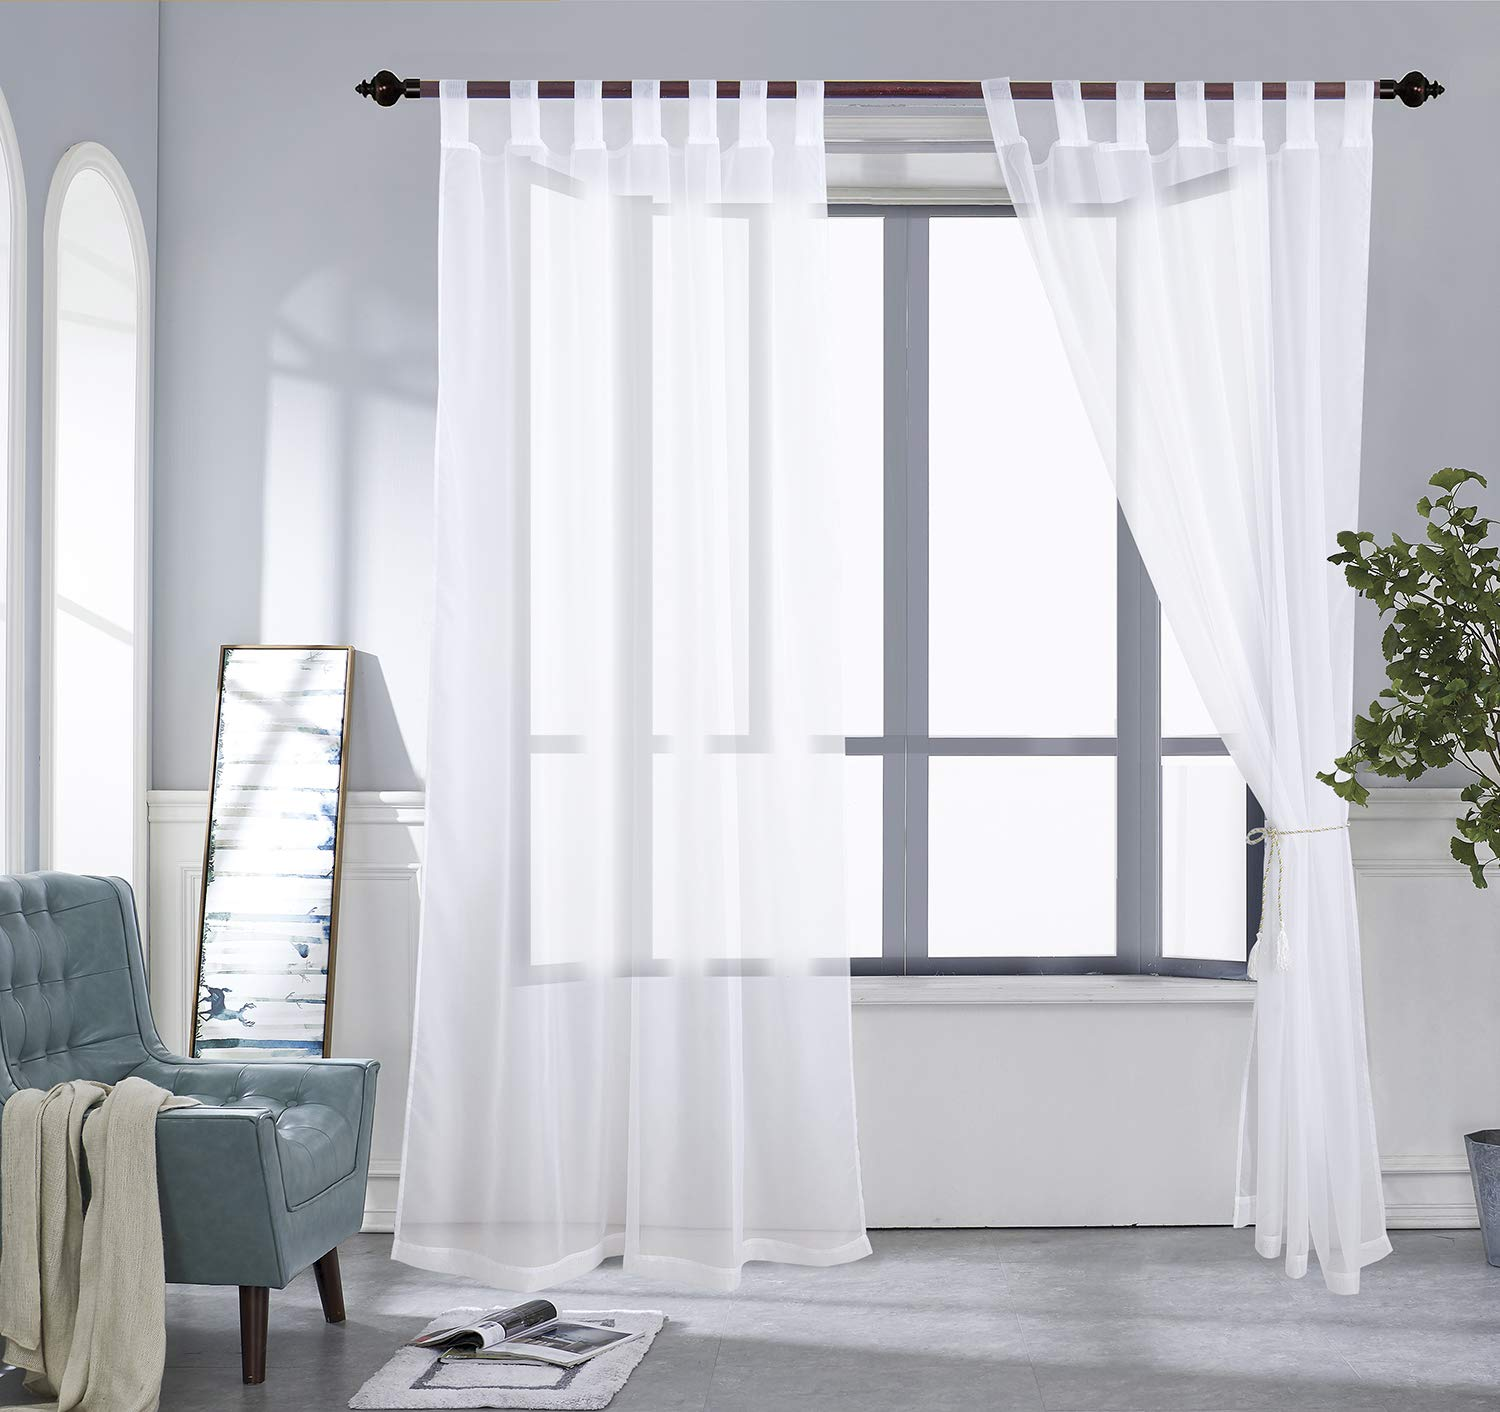 PRAVIVE Outdoor Sheer Curtains 84 - Waterproof Tab Top Indoor Outdoor Curtains Patio Privacy White Sheer Drapes Blinds for Porch/Deck/Pergola with 2 Tiebacks, W54 x L84 Inches, 2 Panels by PRAVIVE (Image #2)